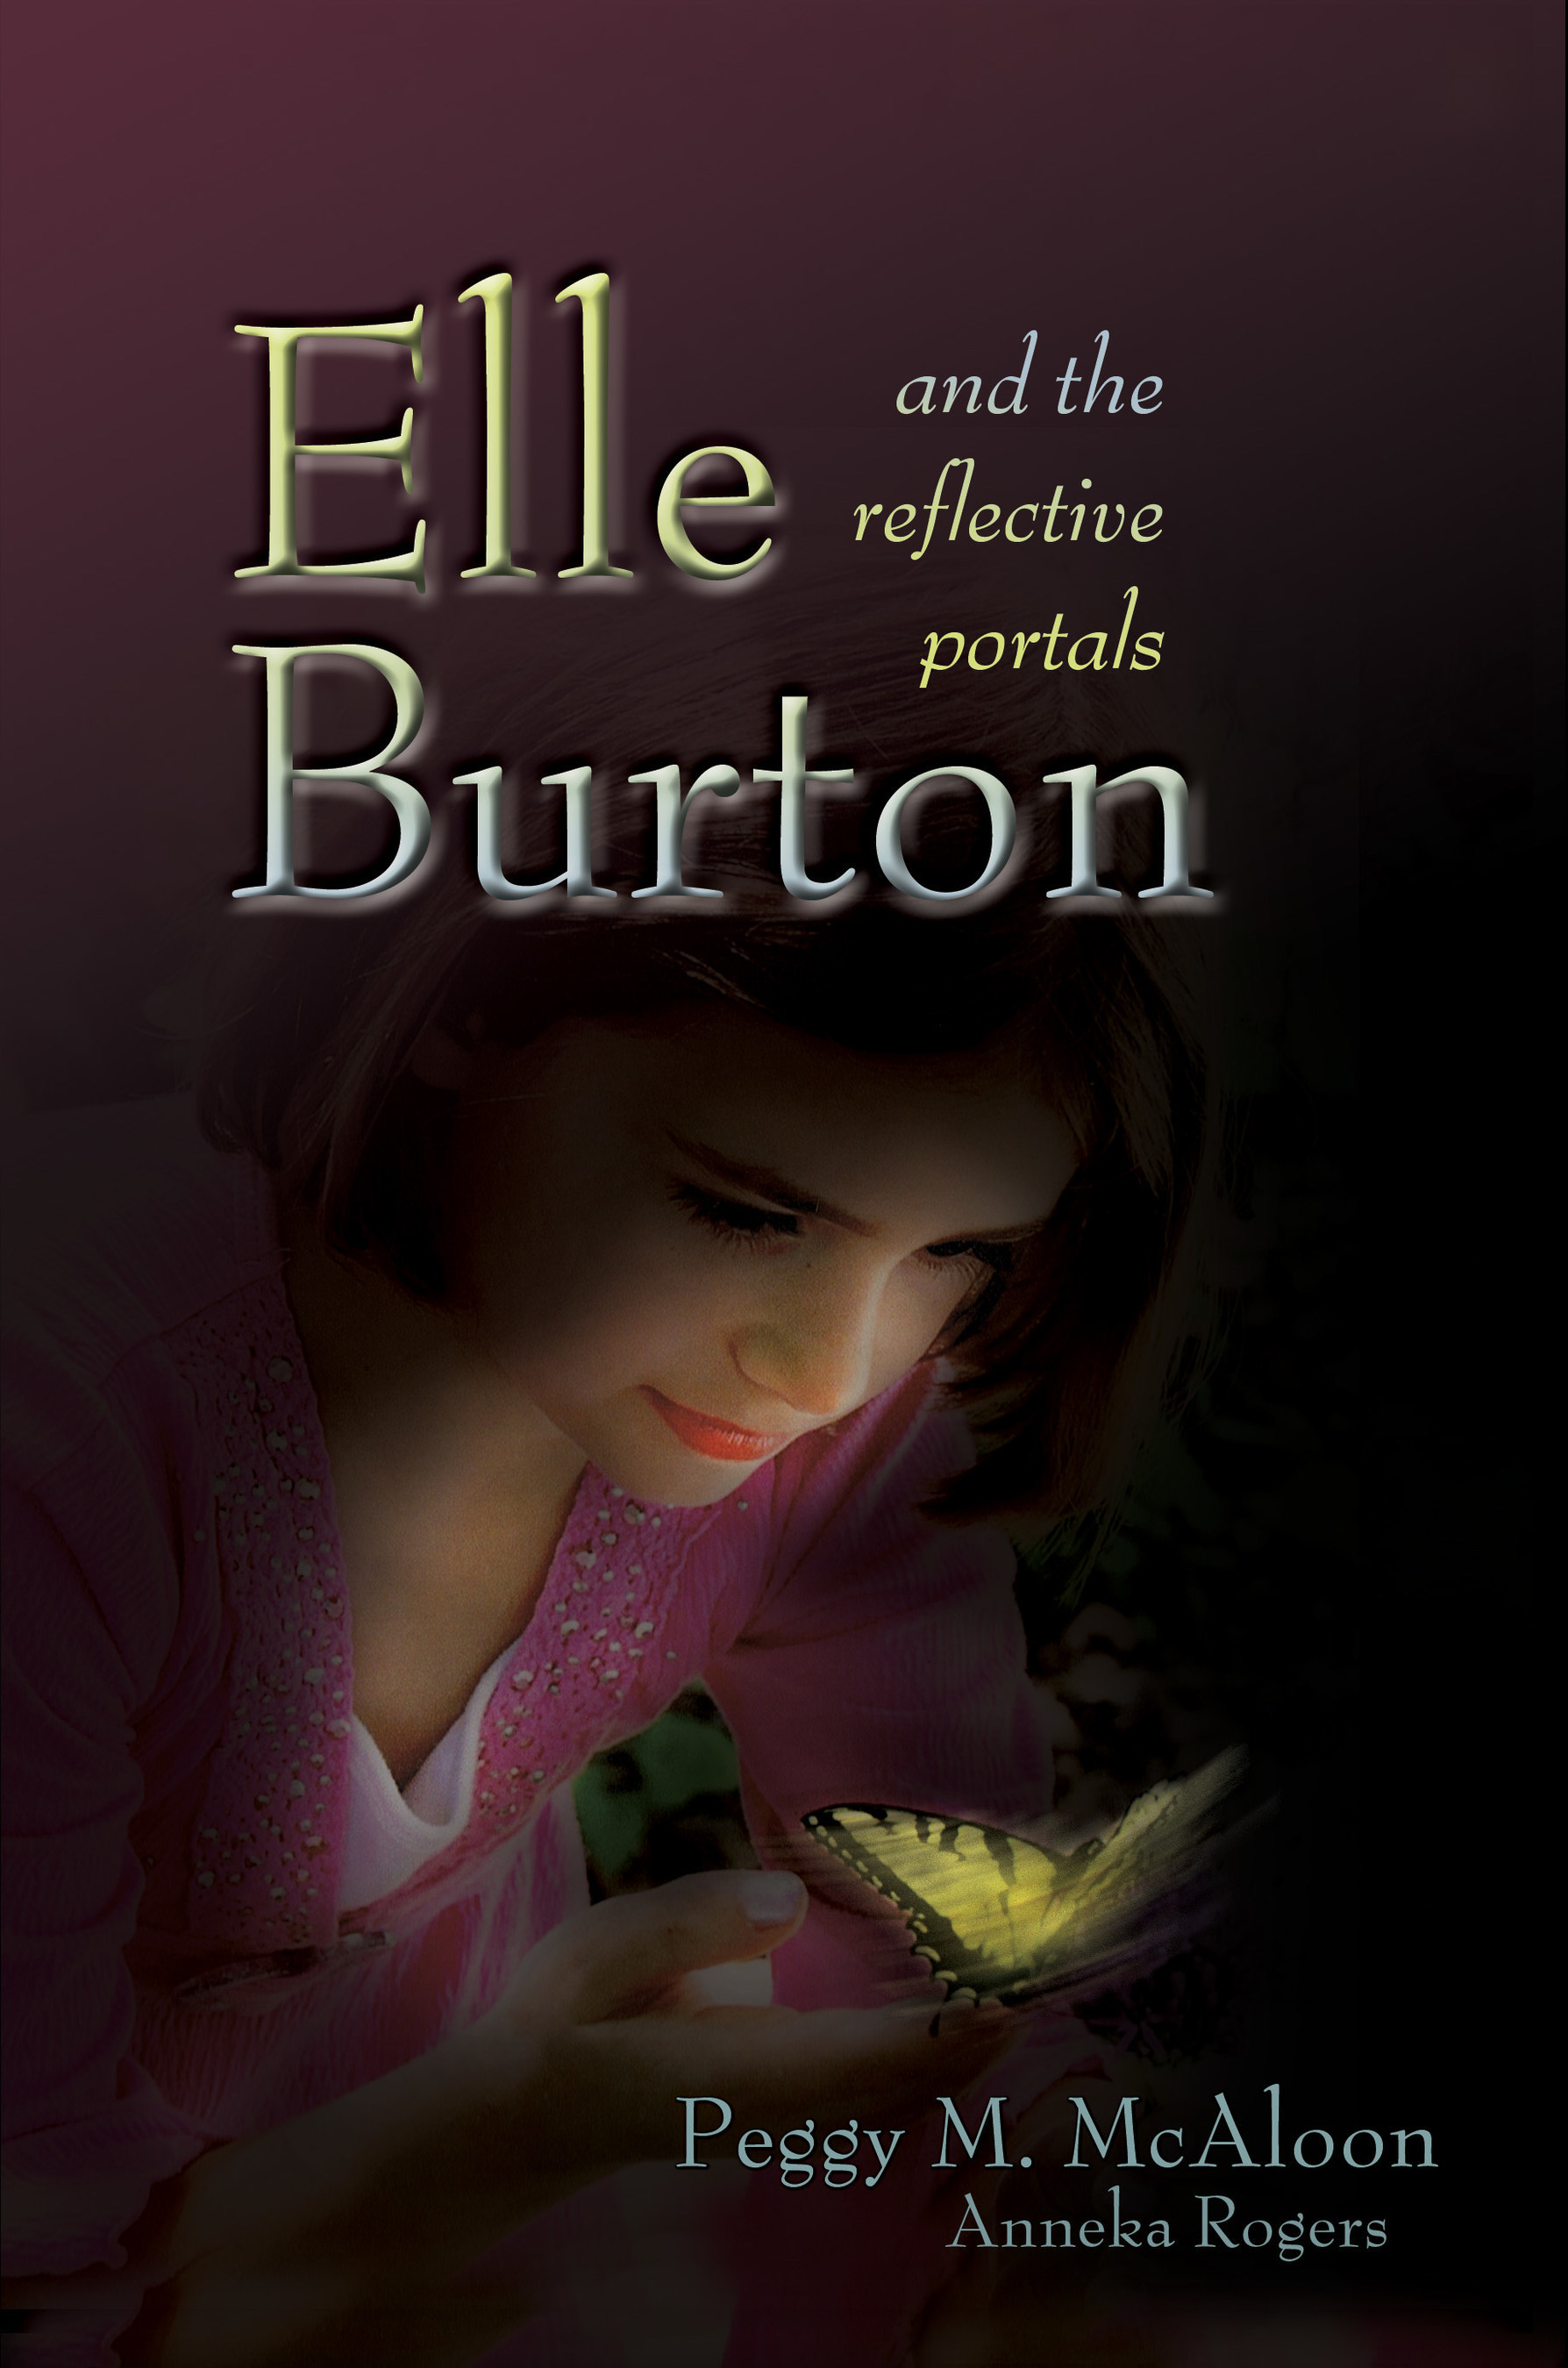 'Elle Burton and the Reflective Portals' by Peggy McAloon is Released